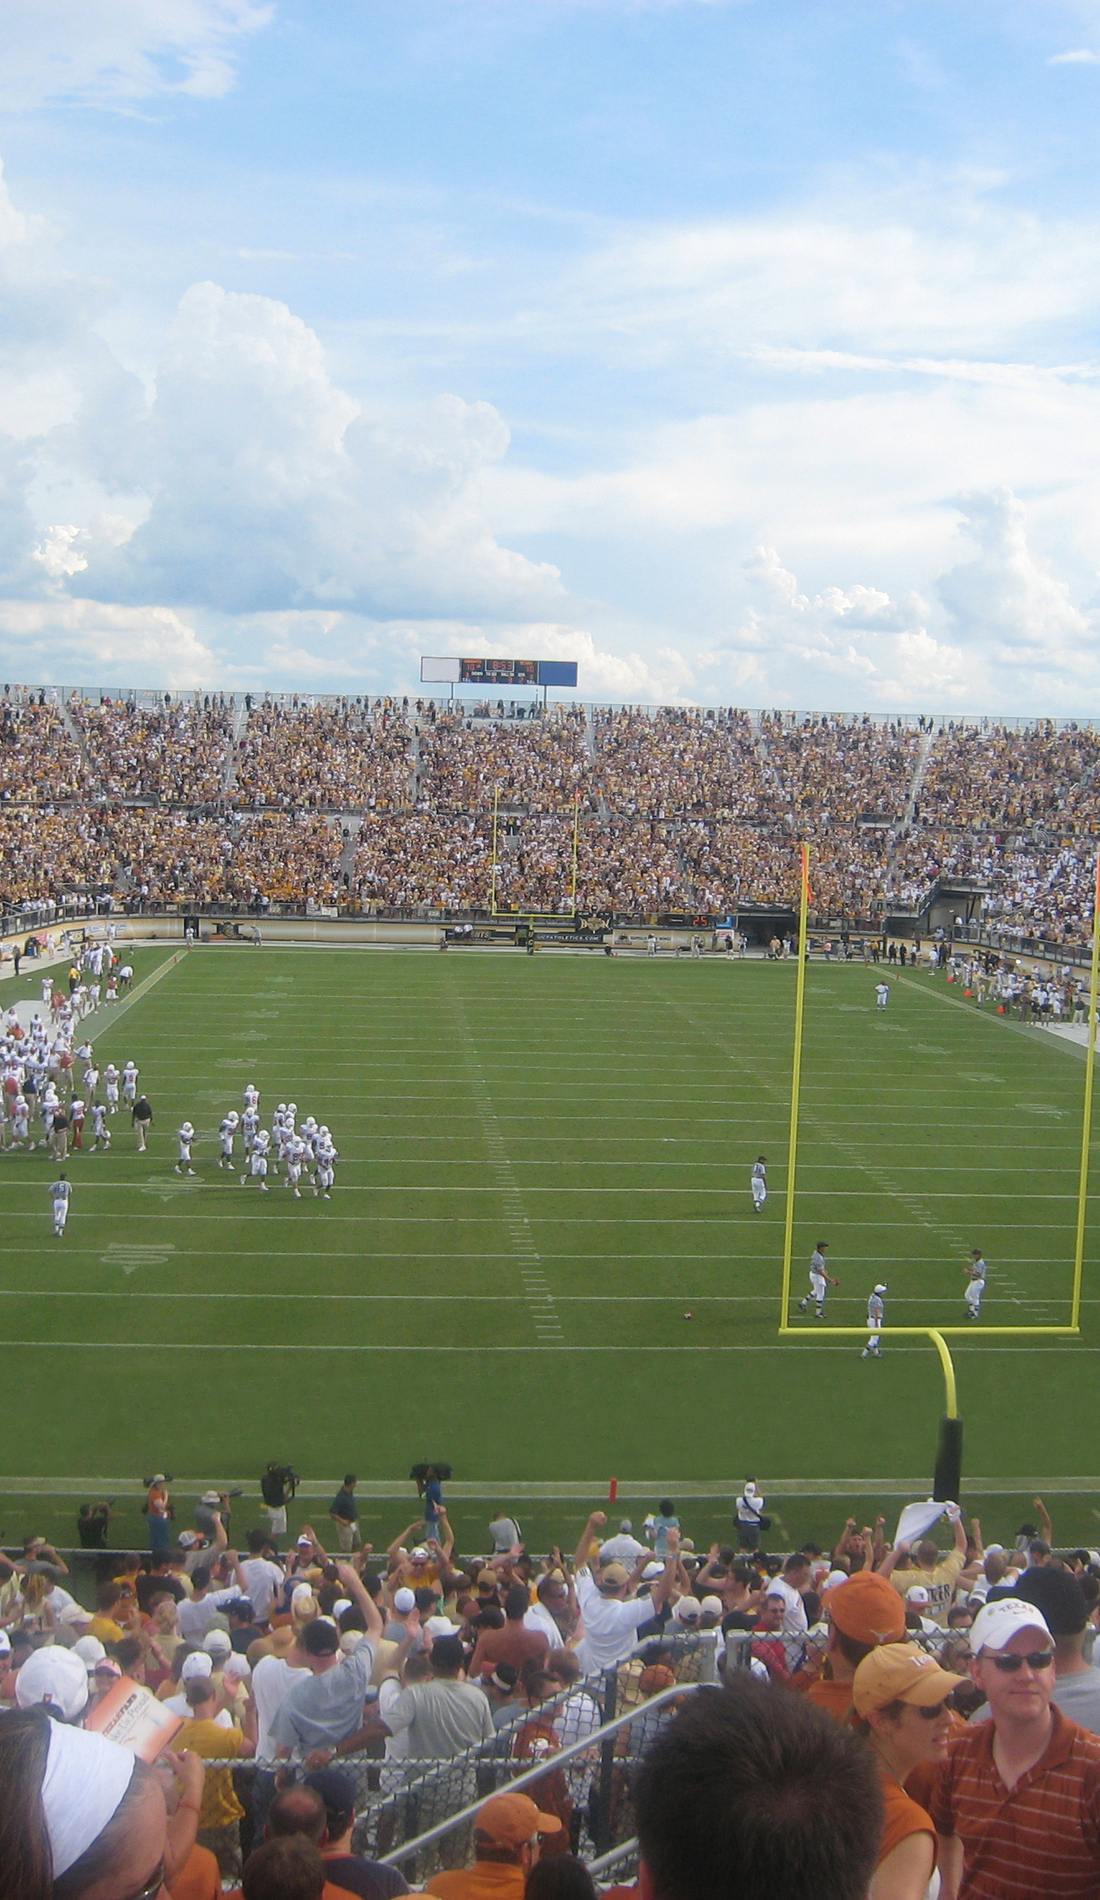 A UCF Knights Football live event